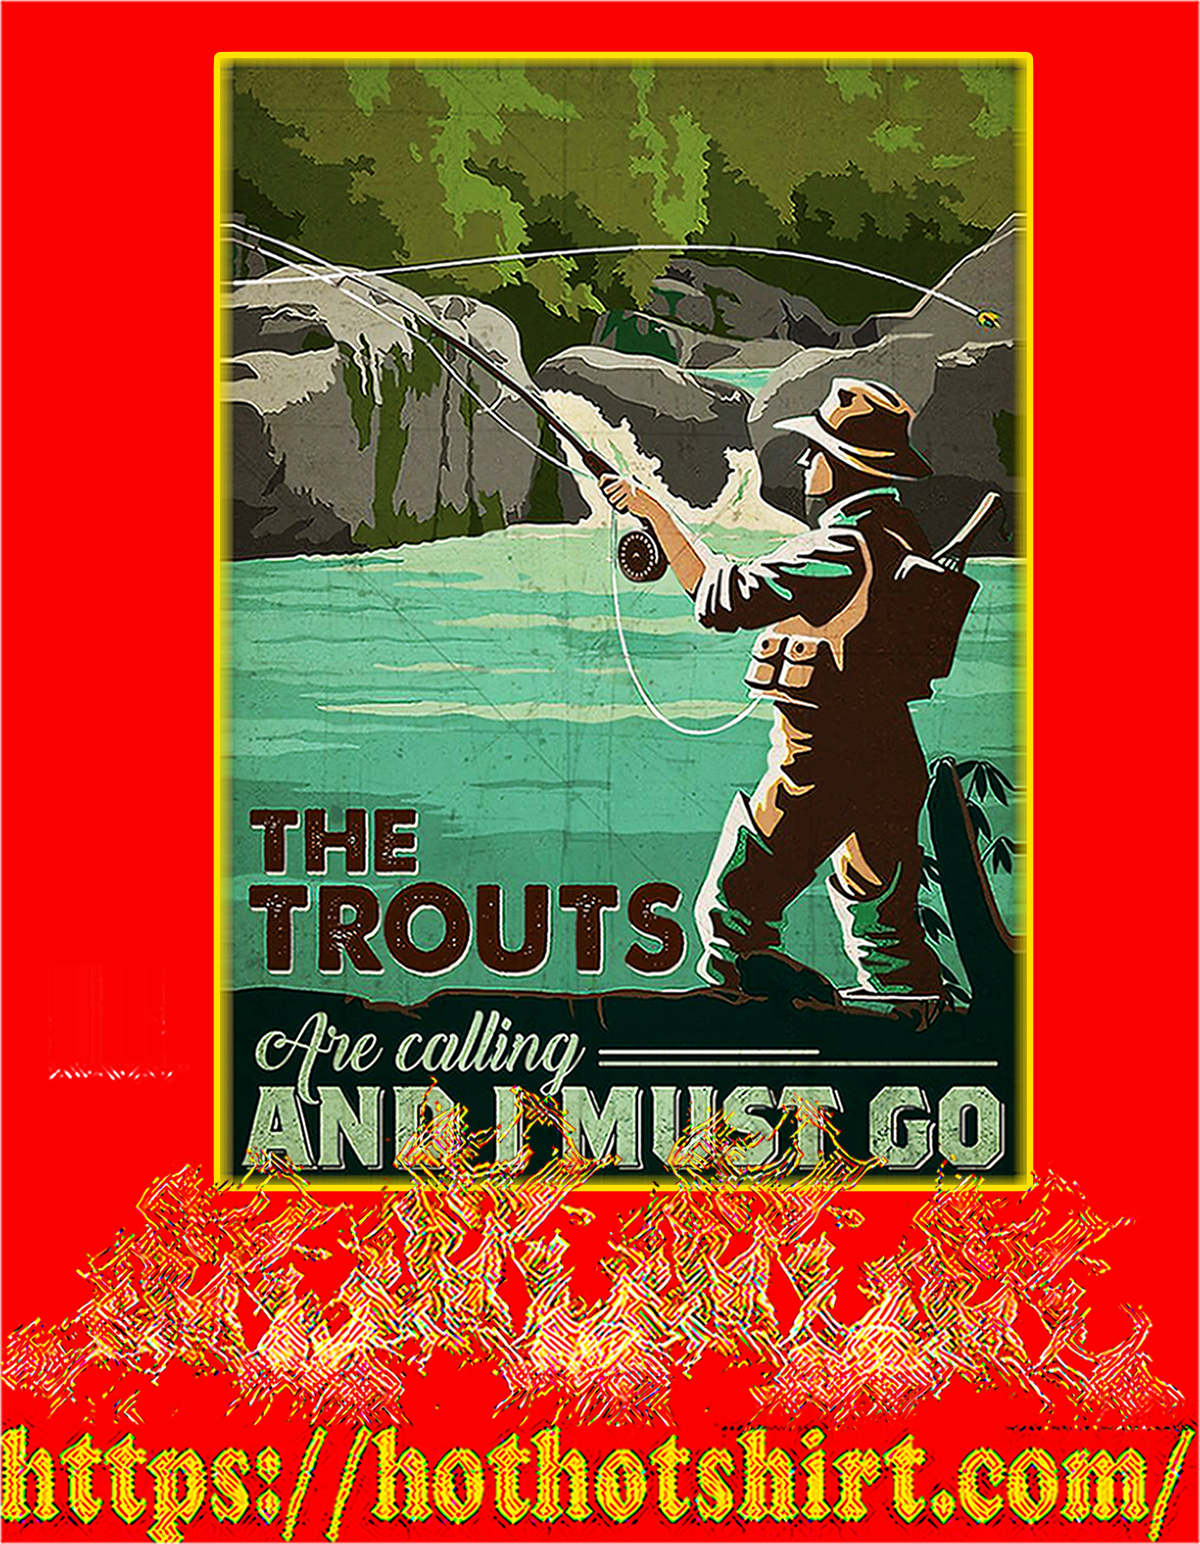 The trouts are calling and I must go poster - A2